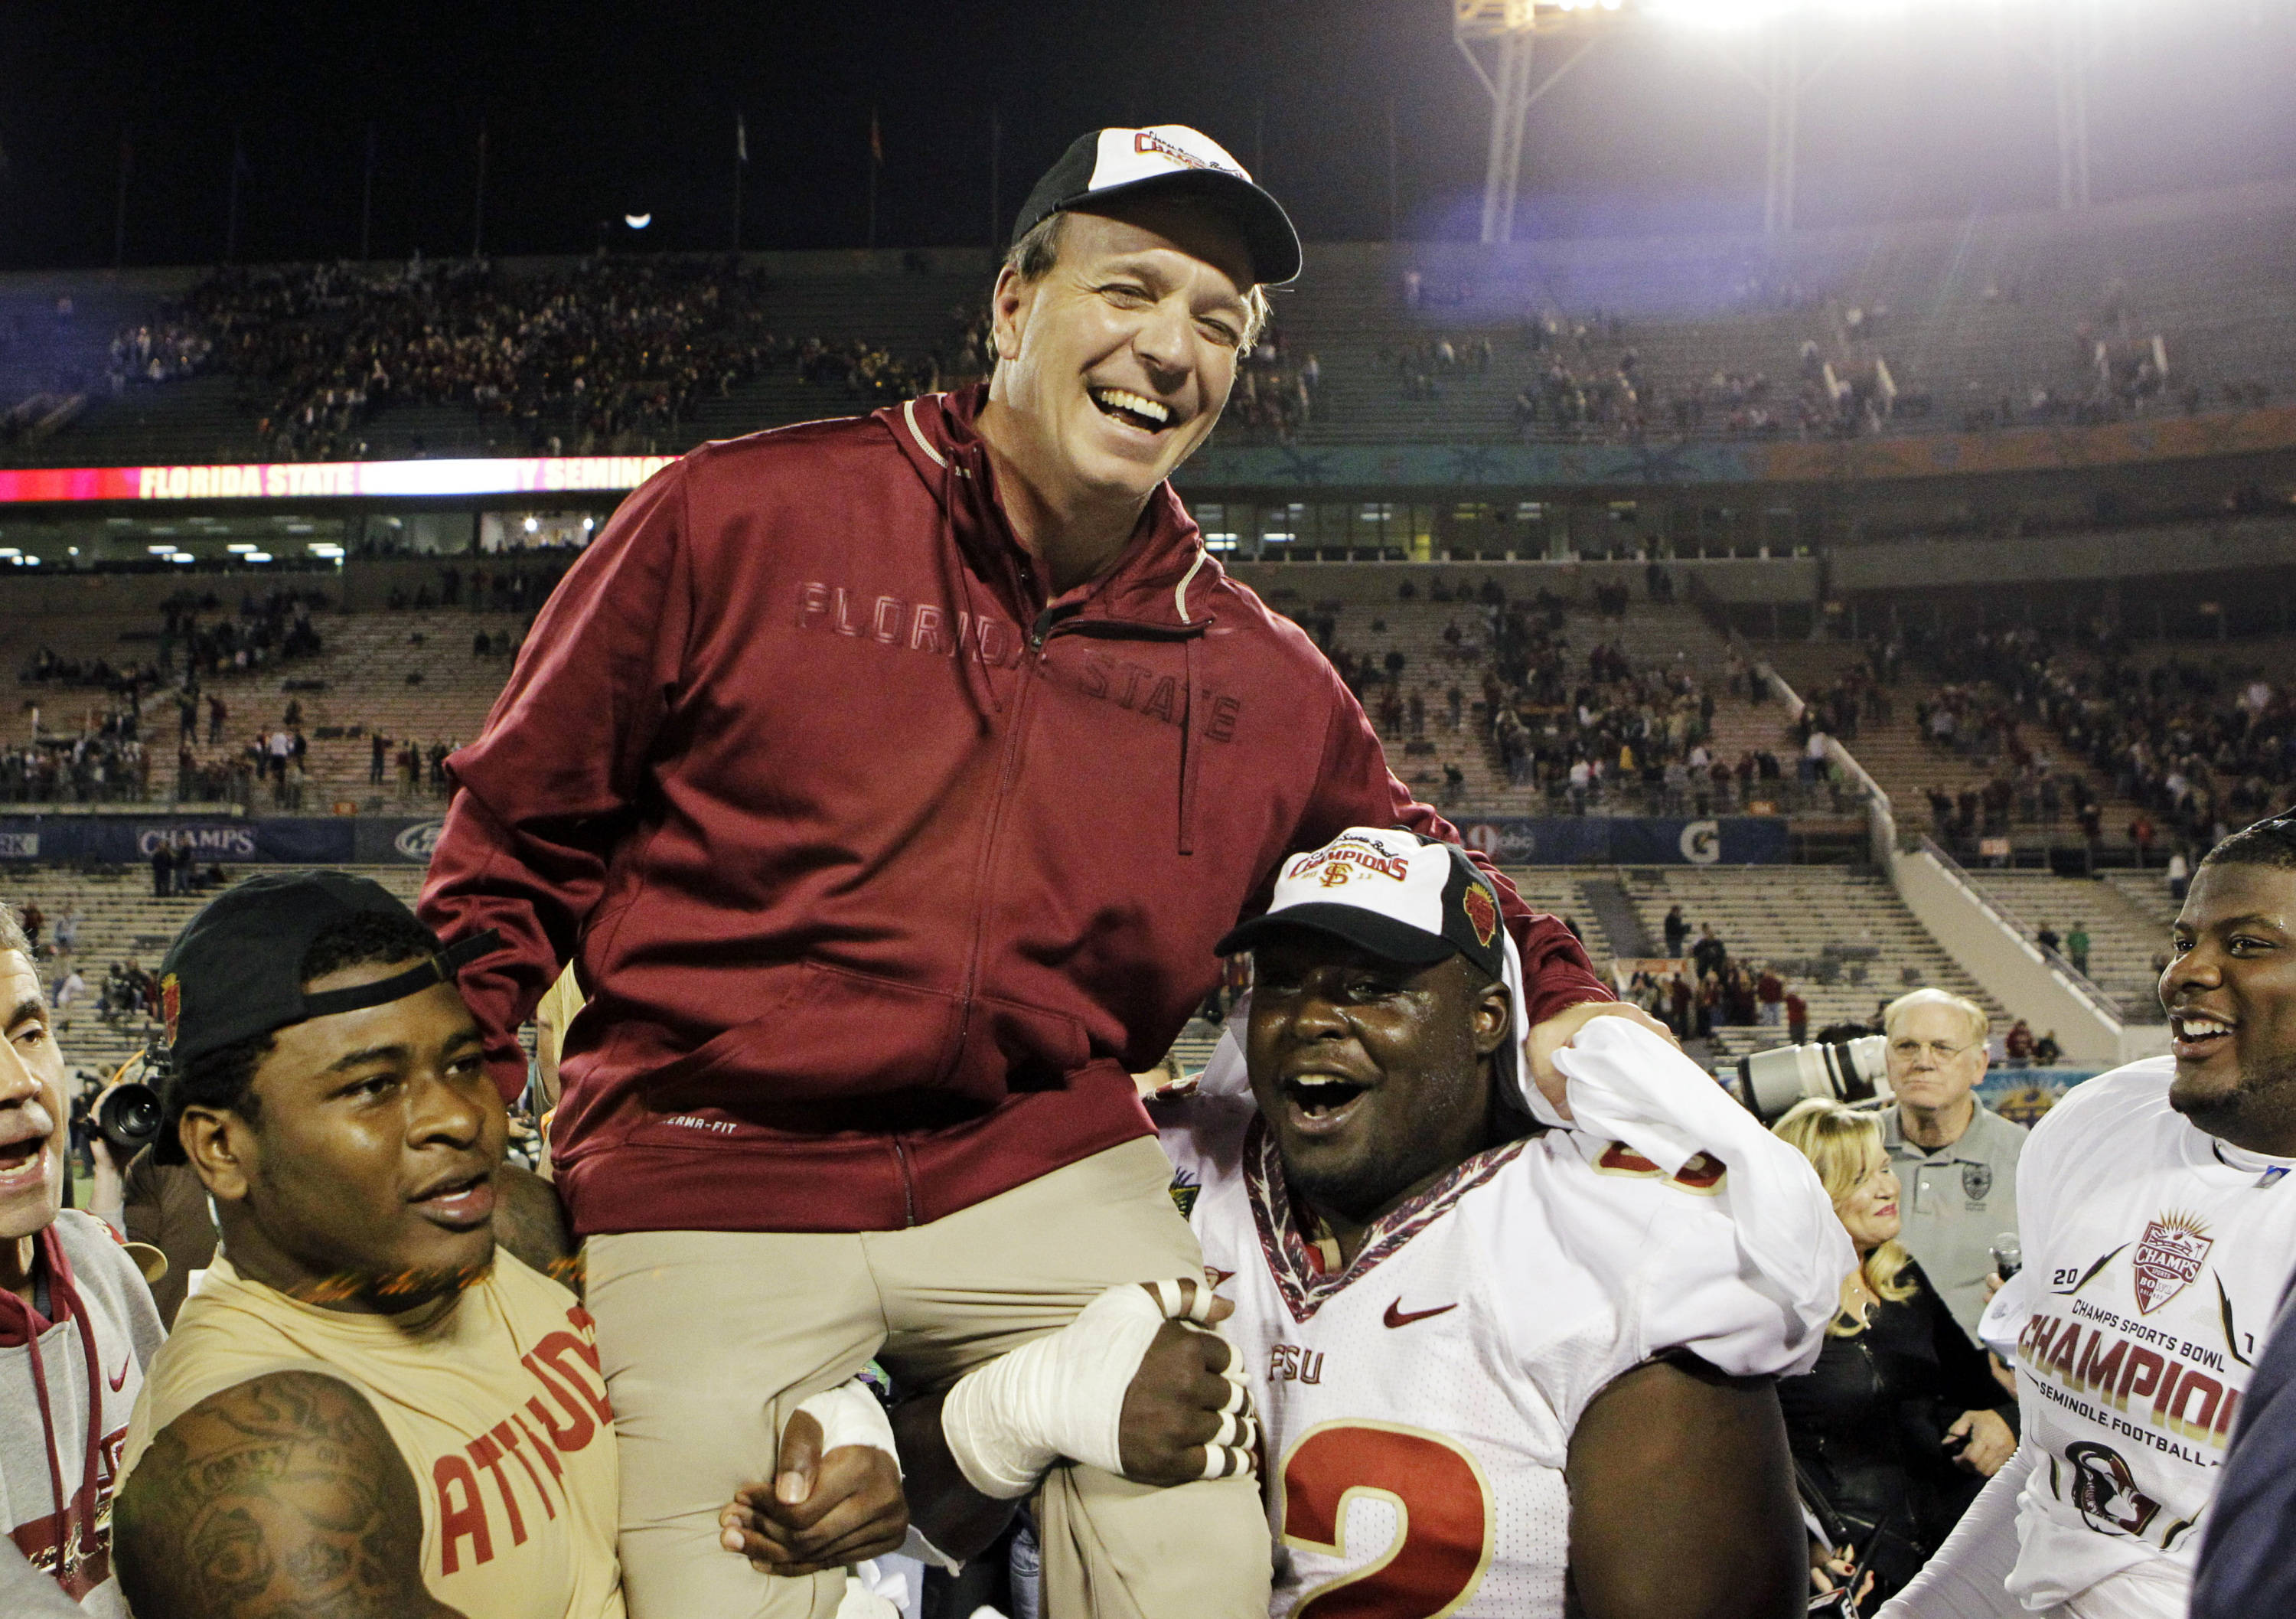 Florida State players carry head coach Jimbo Fisher off the field after they defeated Notre Dame 18-14 in the Champs Sports Bowl. (AP Photo/John Raoux)